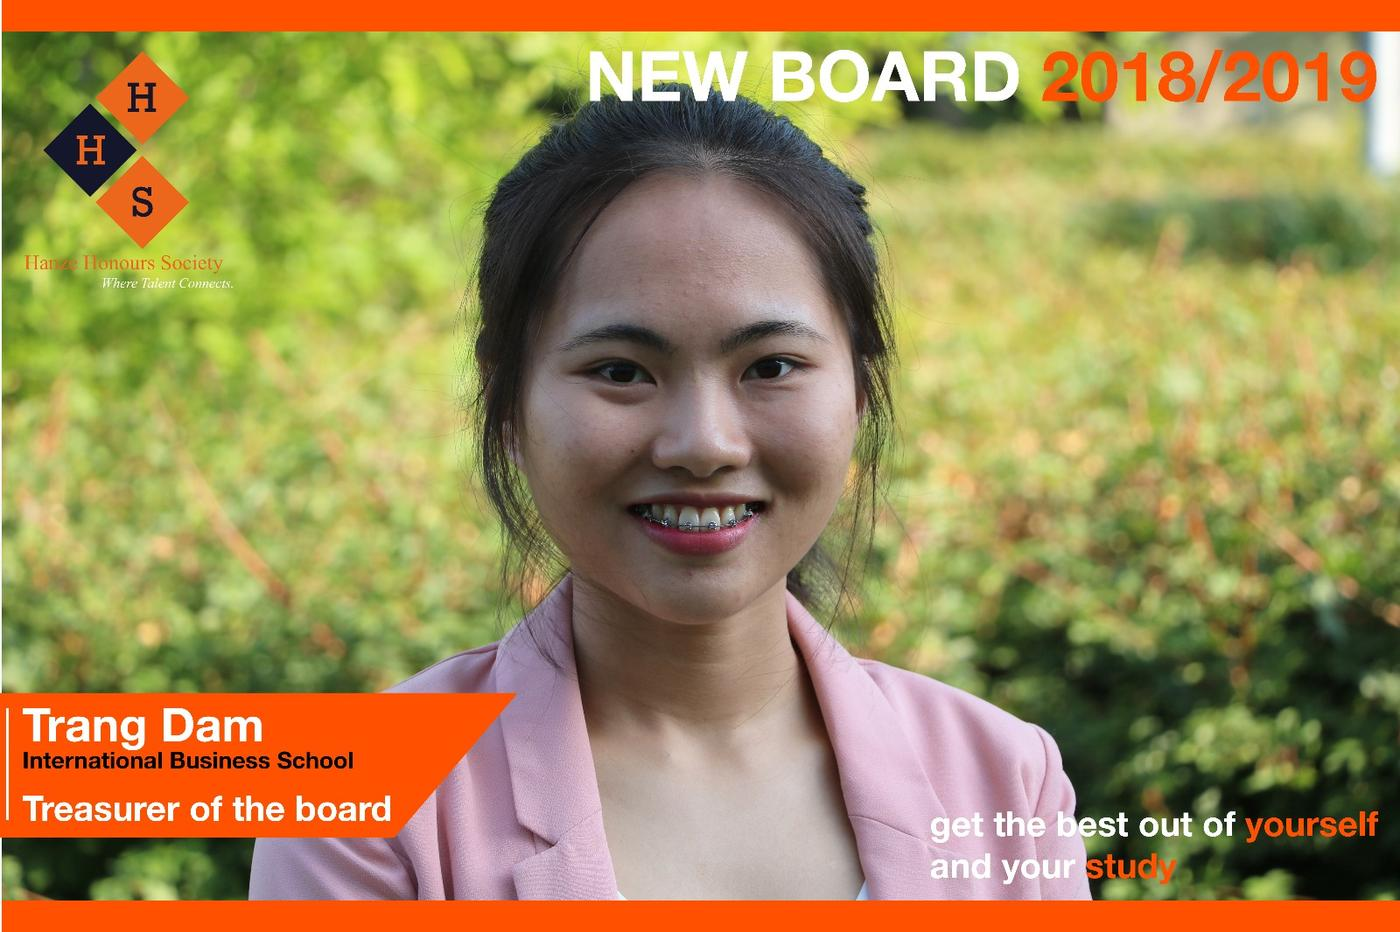 New Board - Treasurer